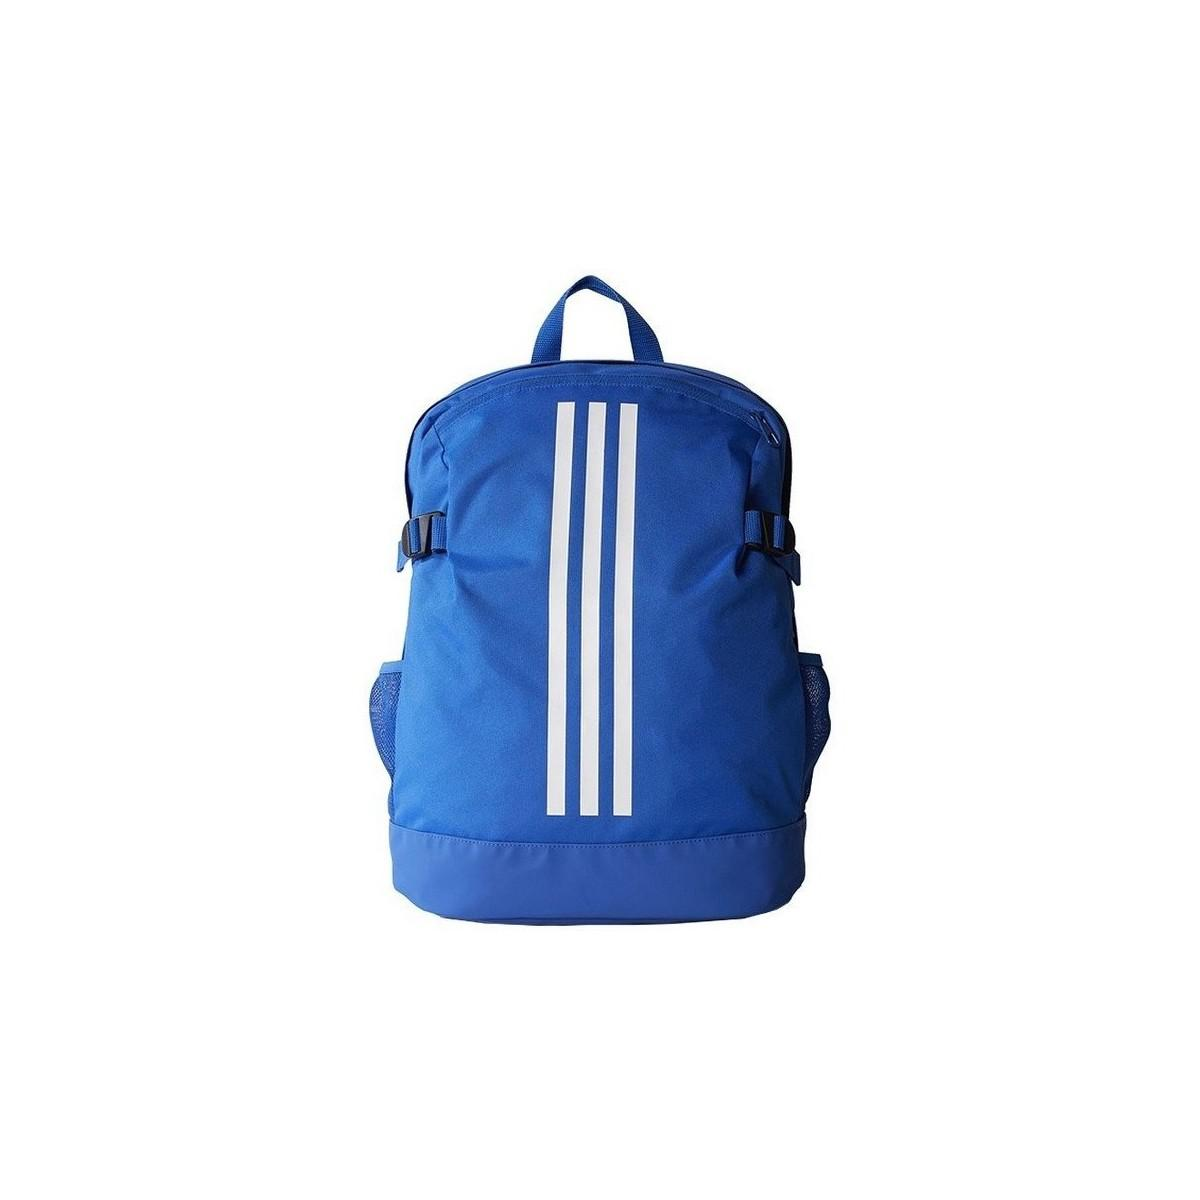 dbfef0be7bab adidas Bp Power Iv M Men s Backpack In Blue in Blue for Men - Lyst